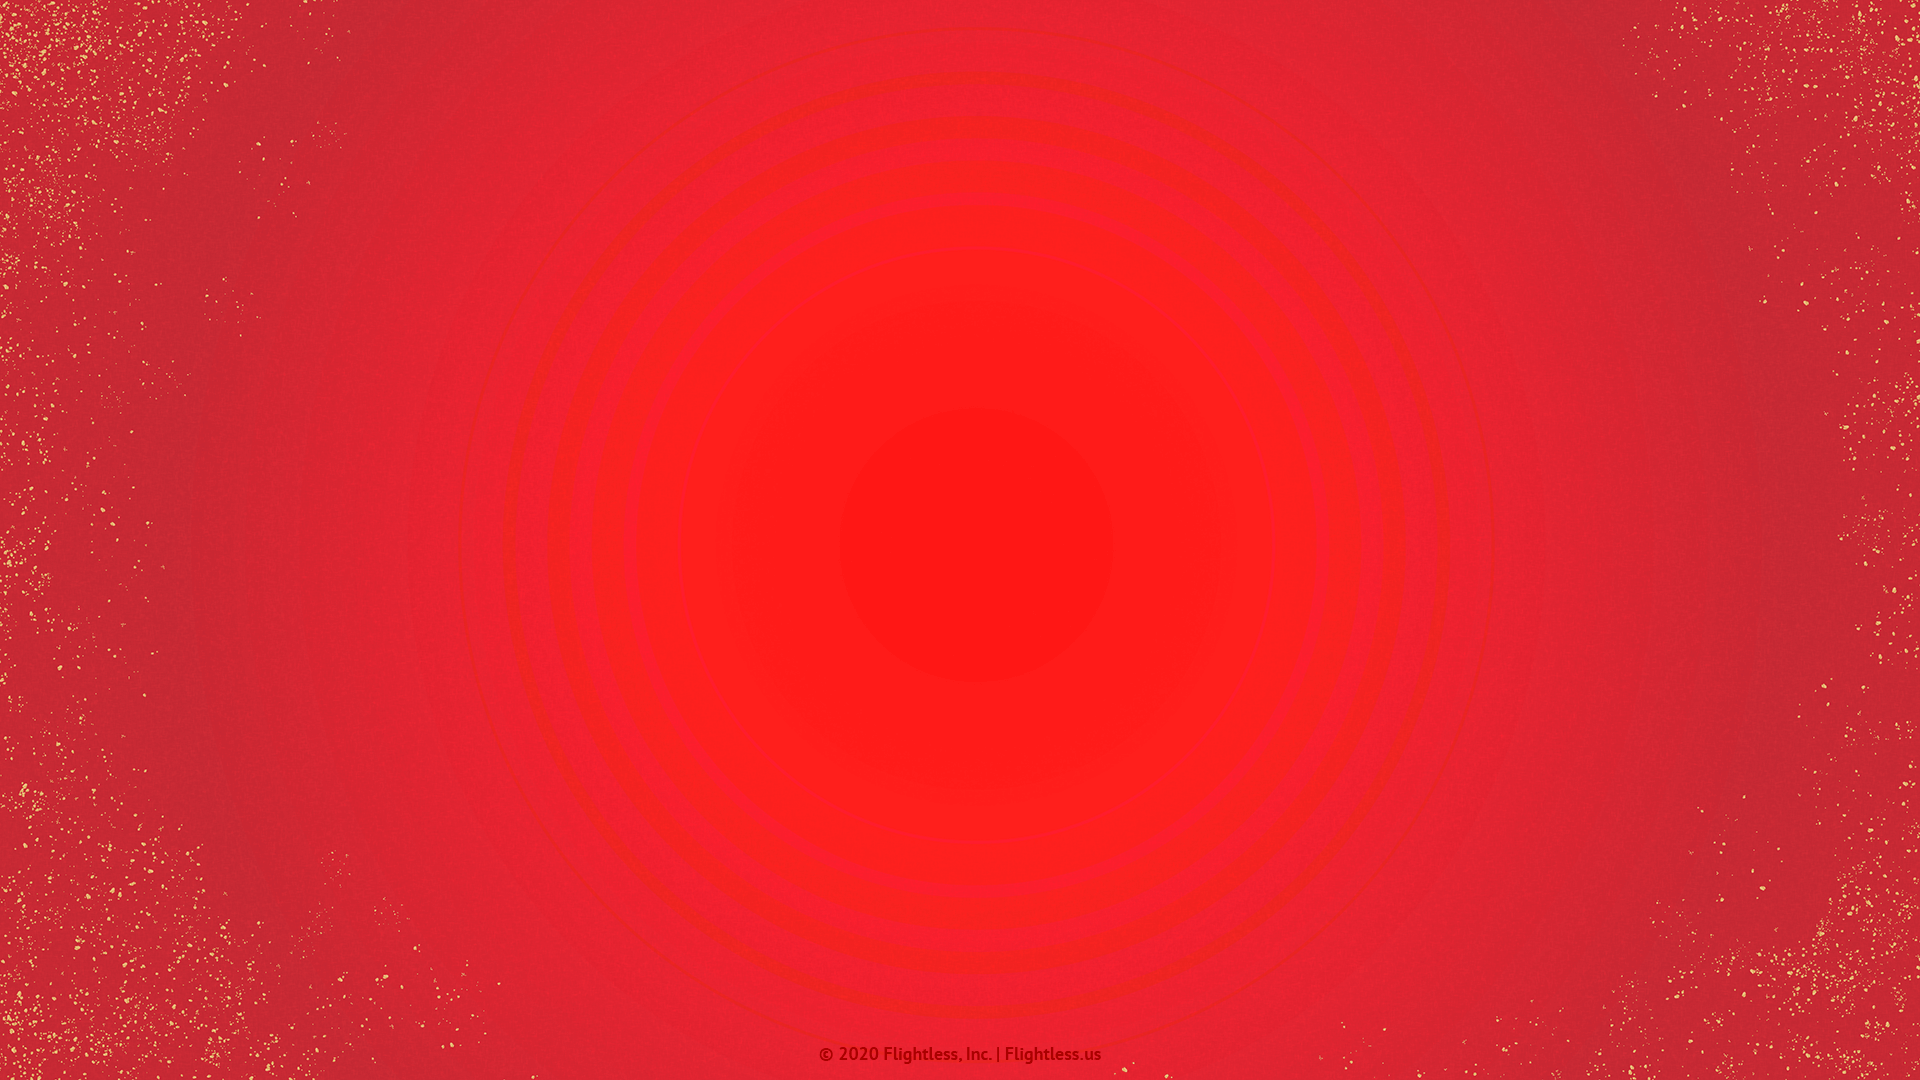 Red Zoom Background with Gold Flecks